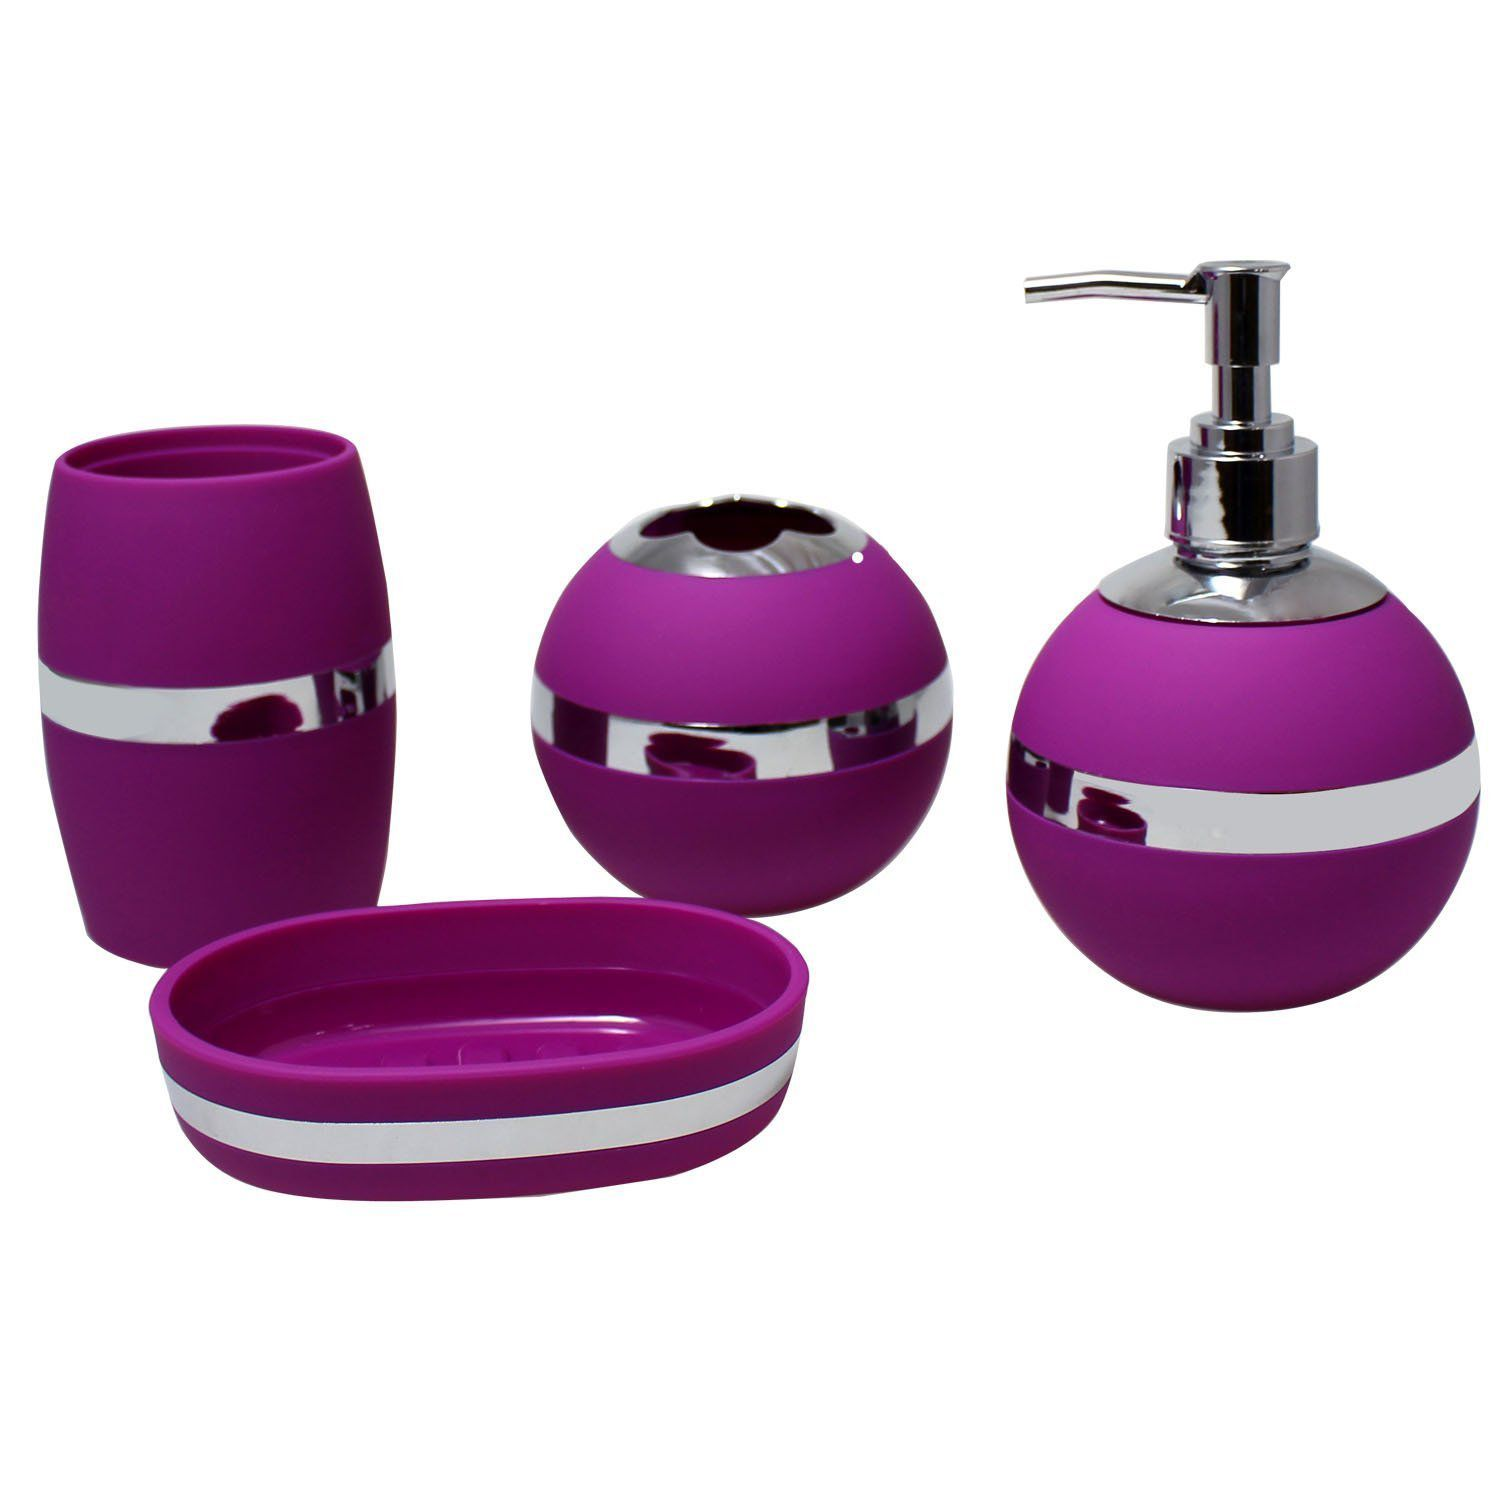 JustNile Stylish 4-Piece Bathroom Accessory Set - Purple